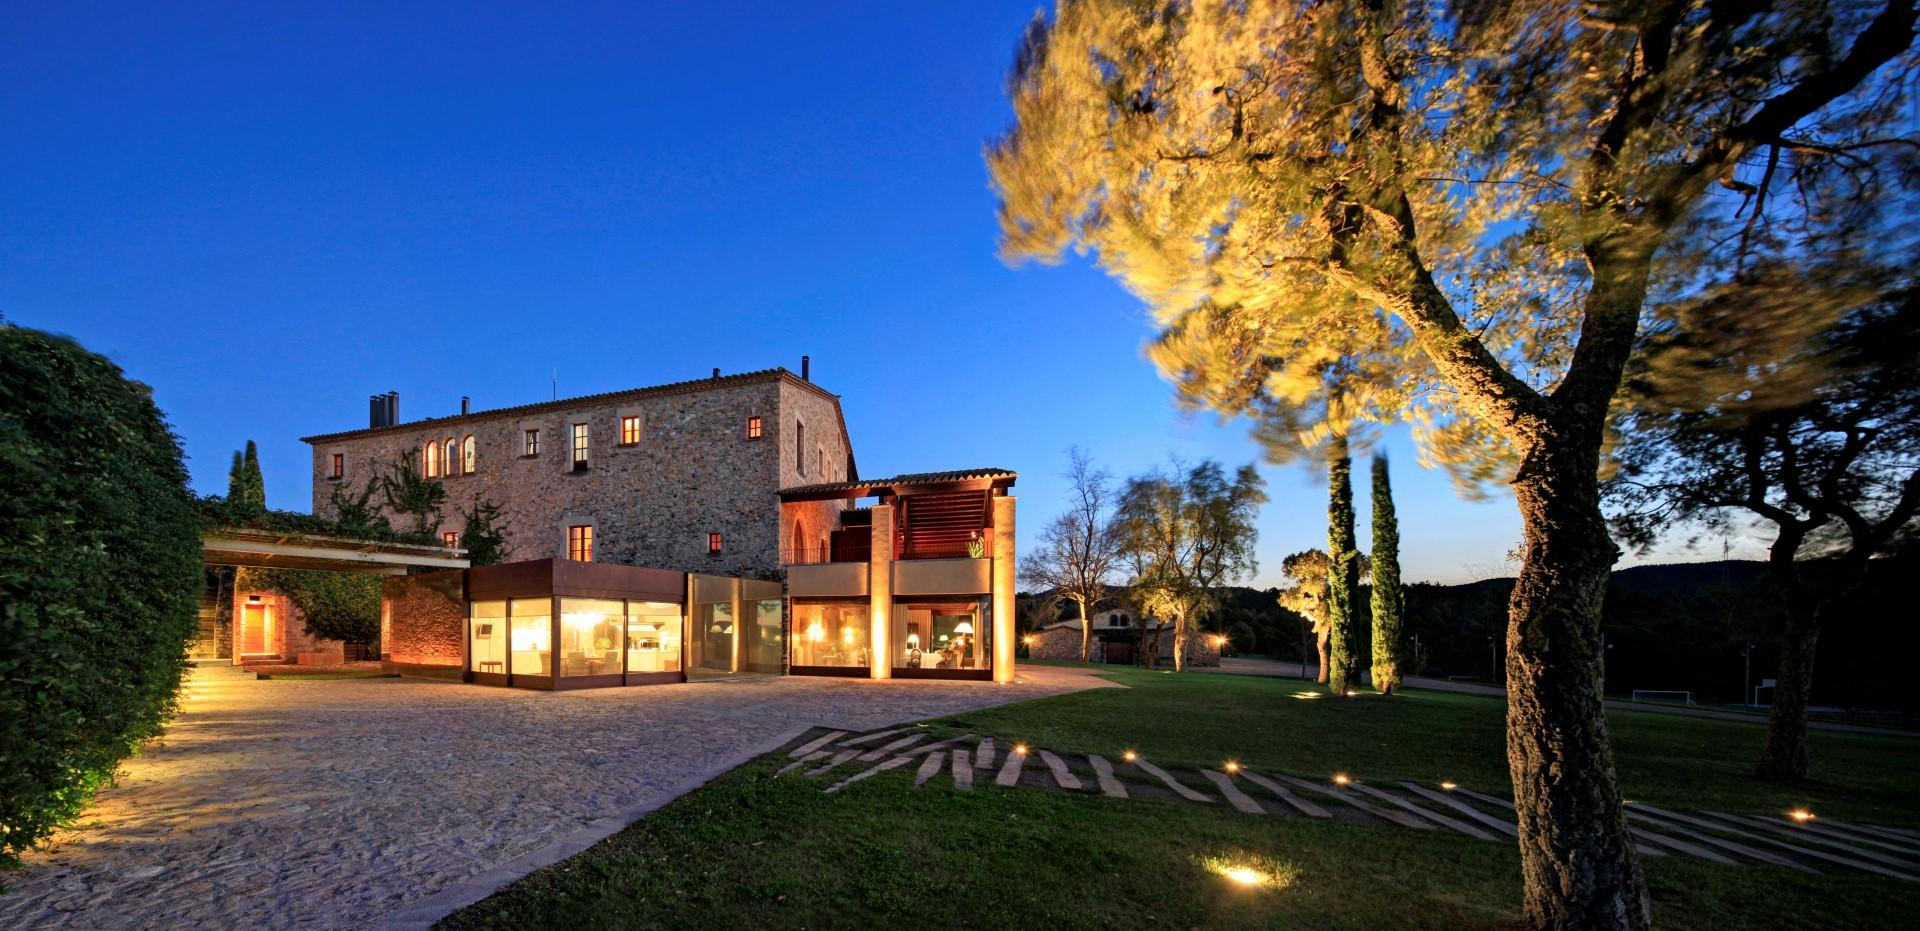 Additional photo for property listing at Luxury Country House - Finca for sale in Caldes de Malavella Caldes De Malavella, Spanje